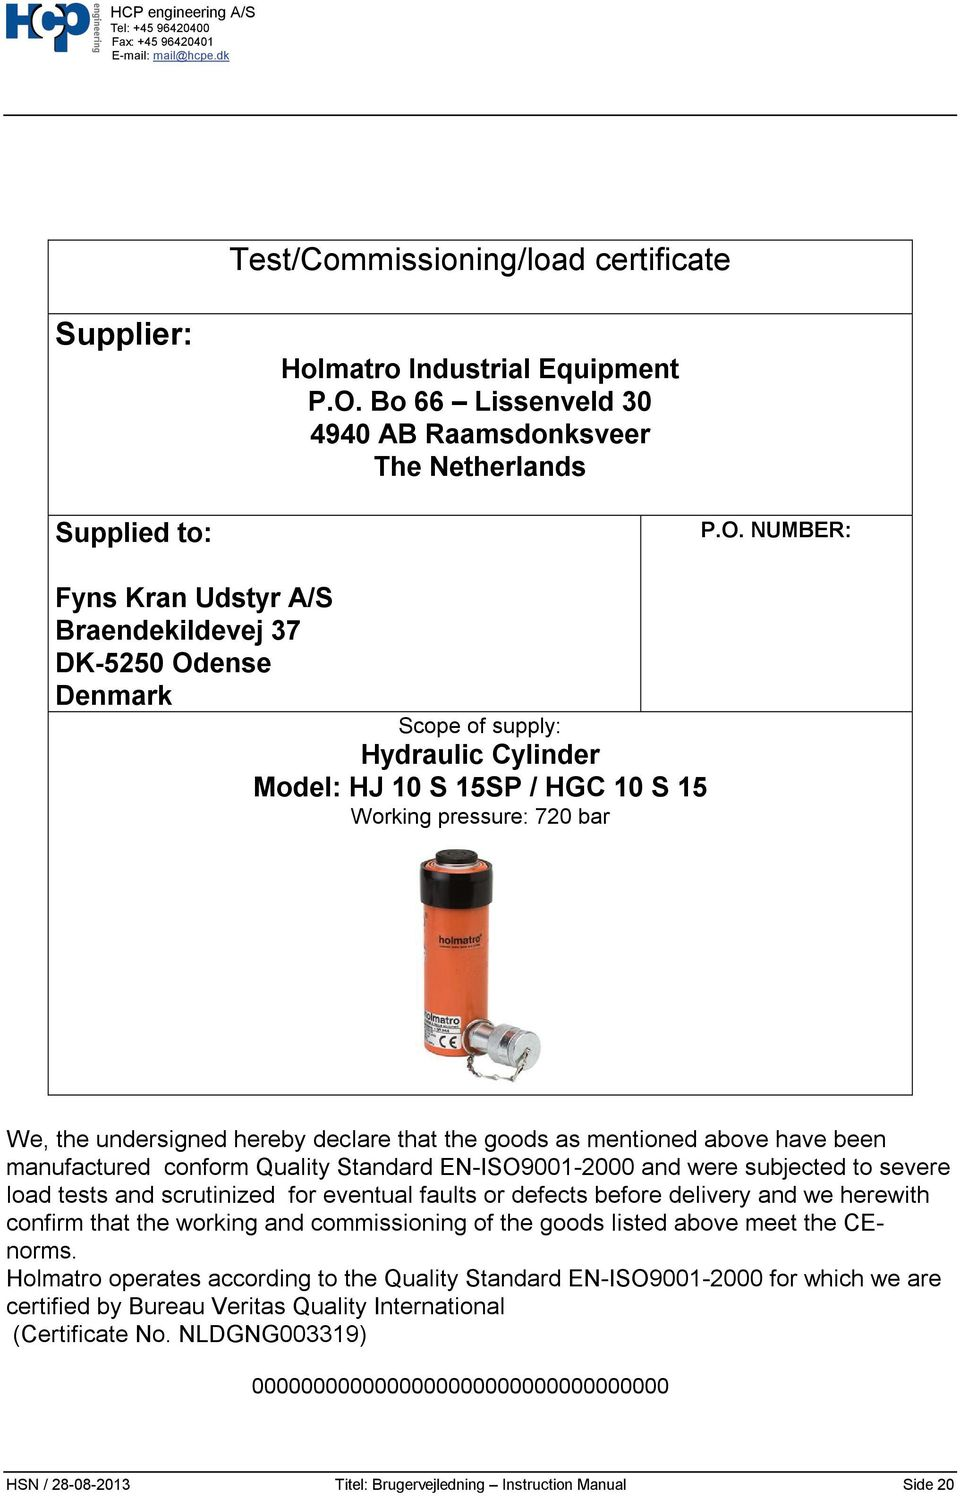 NUMBER: Braendekildevej 37 DK-5250 Odense Denmark Scope of supply: Hydraulic Cylinder Model: HJ 10 S 15SP / HGC 10 S 15 Working pressure: 720 bar We, the undersigned hereby declare that the goods as